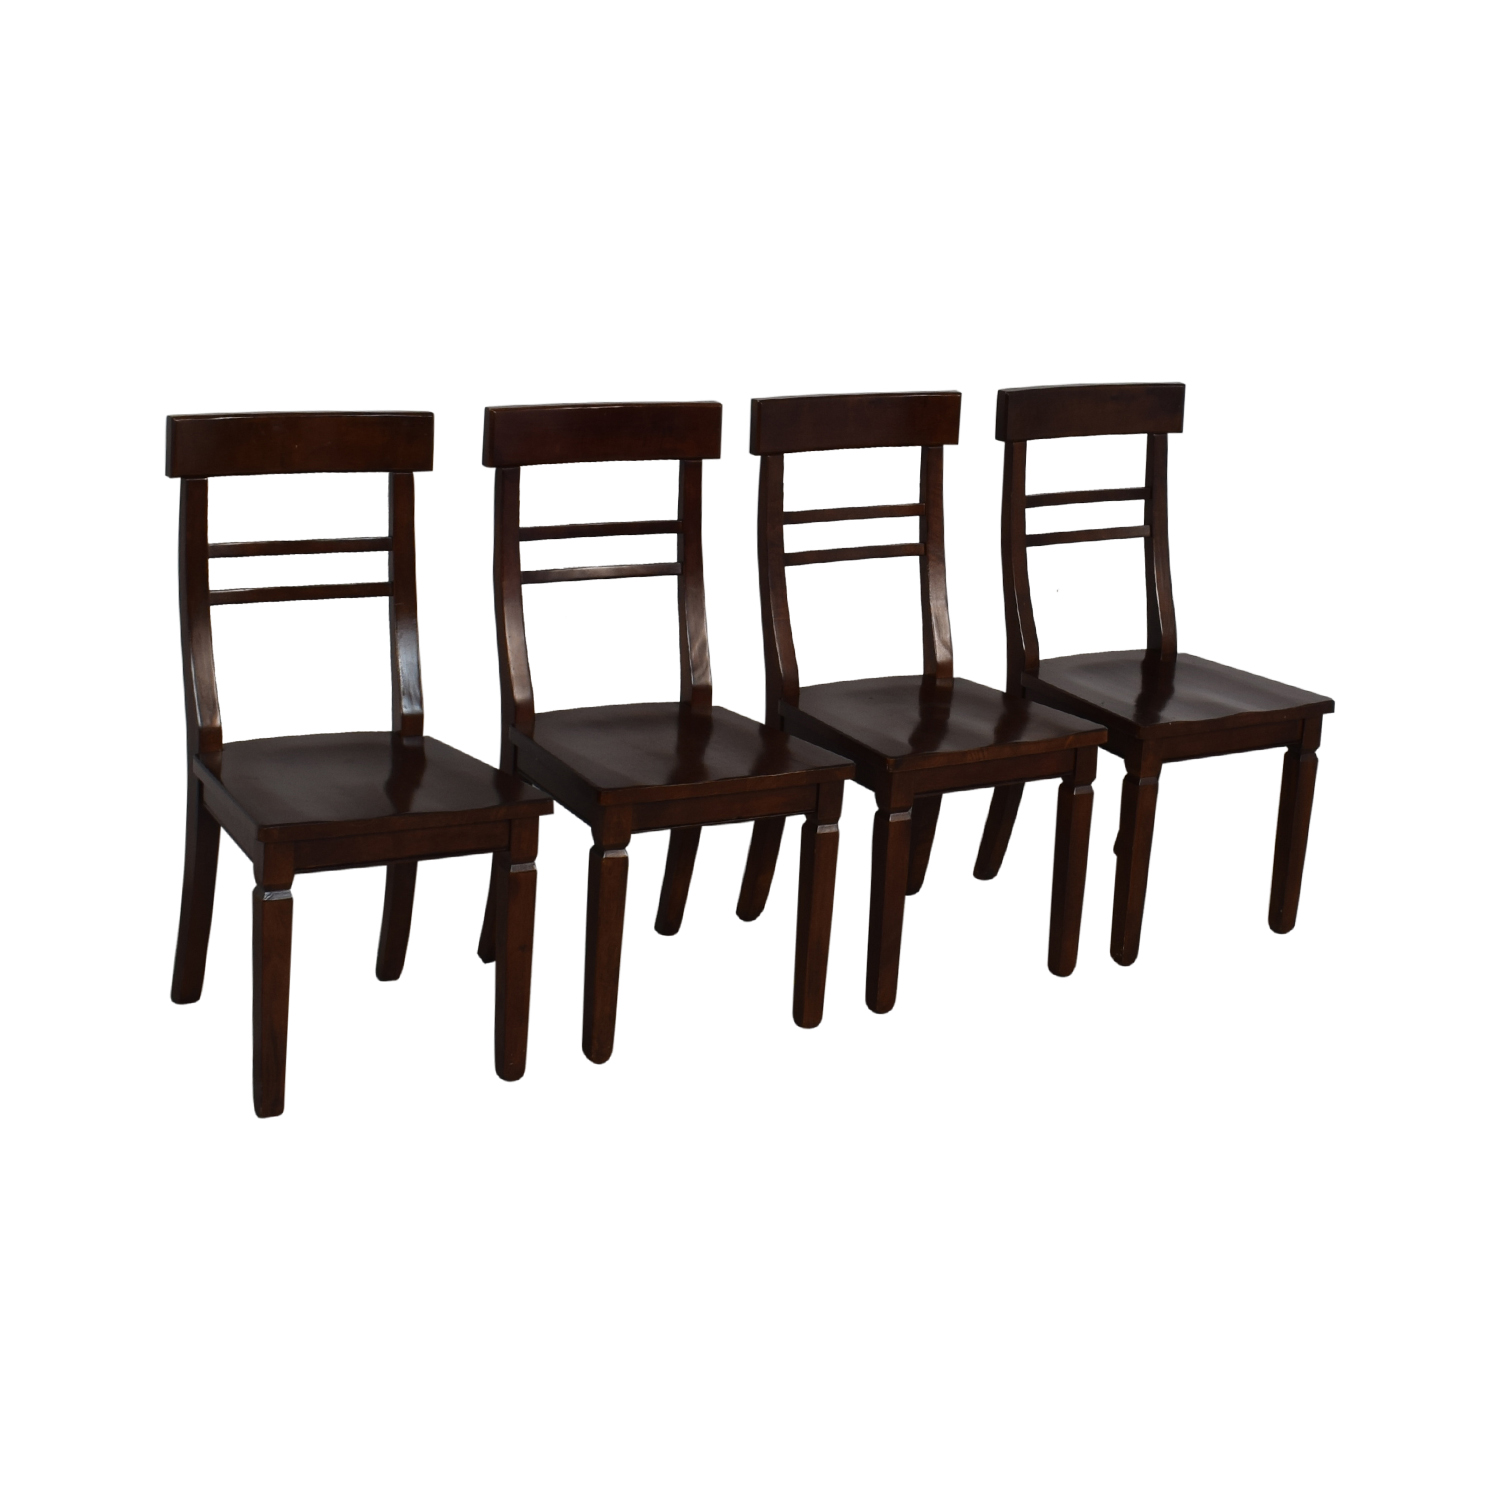 buy Crate & Barrel Dining Chairs Crate & Barrel